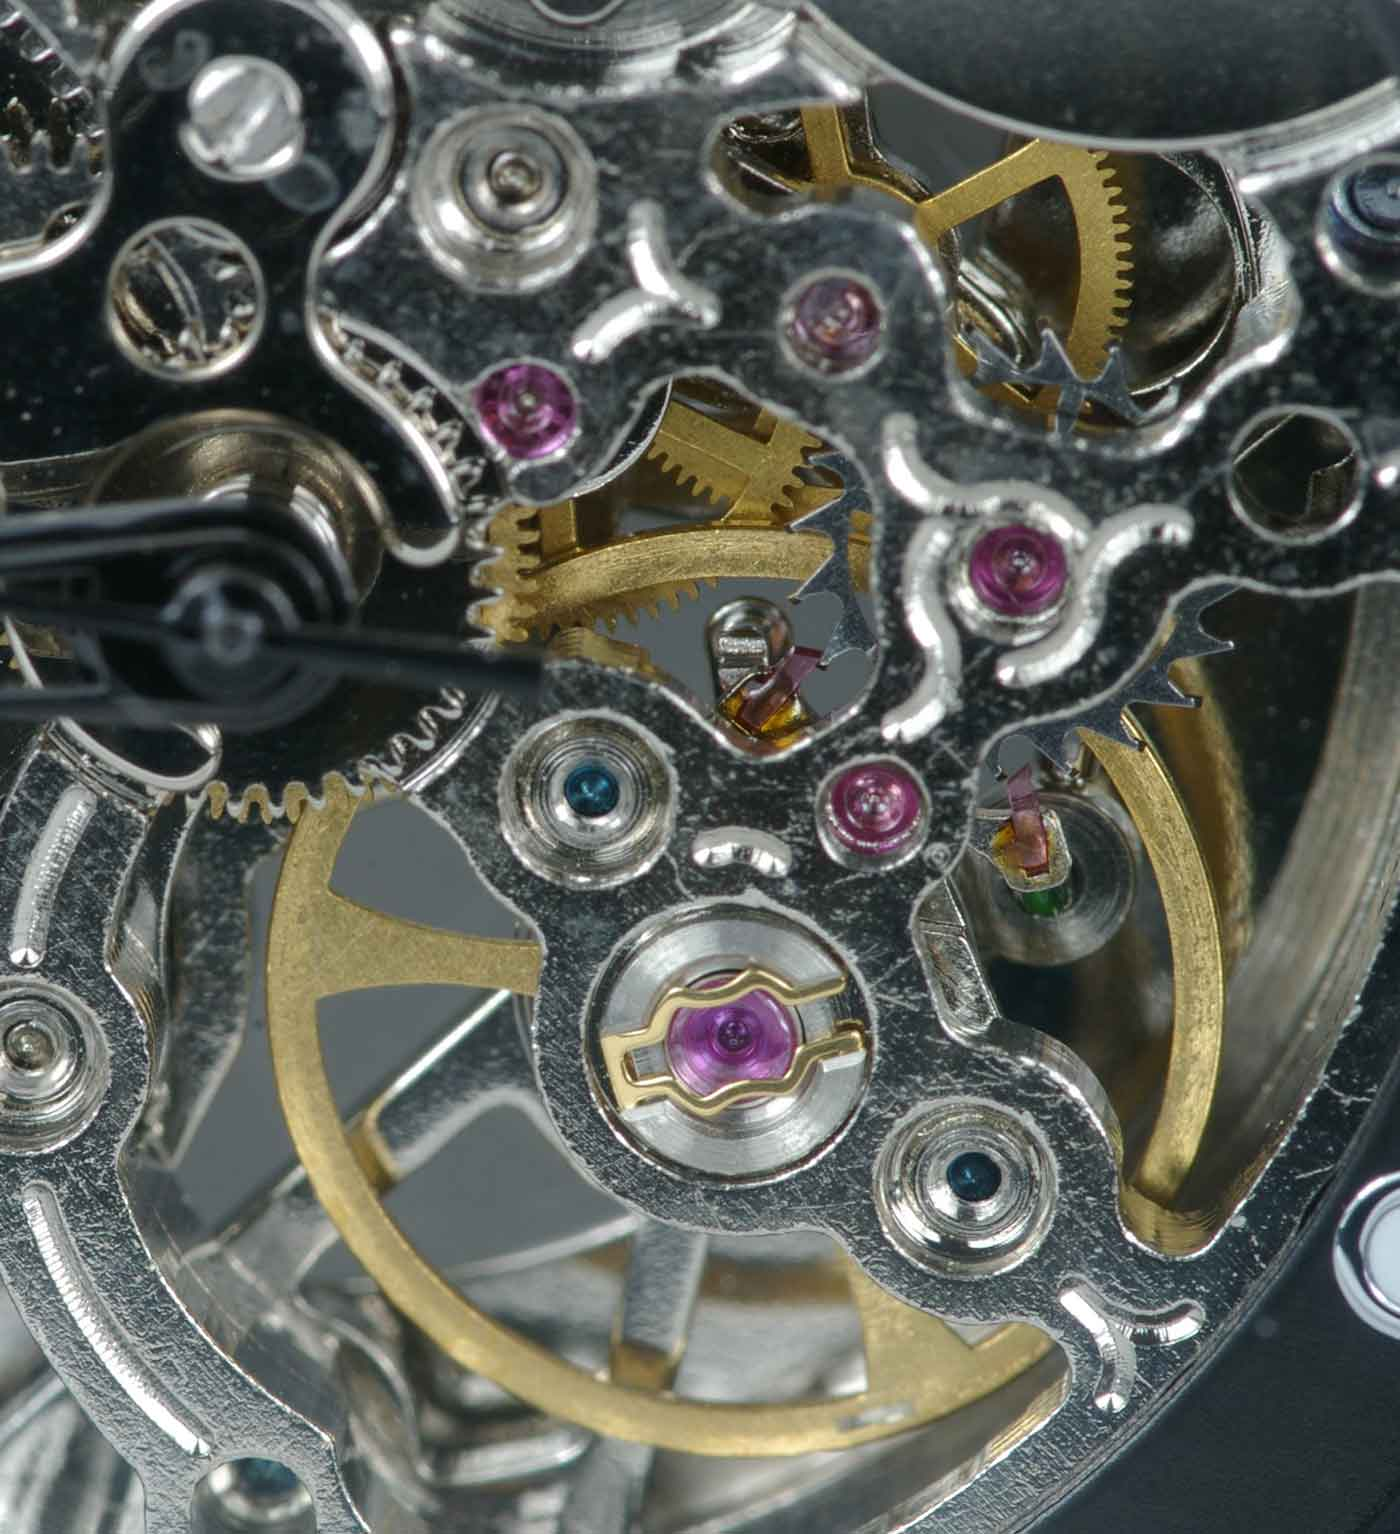 Chinese movement escapement and jewels